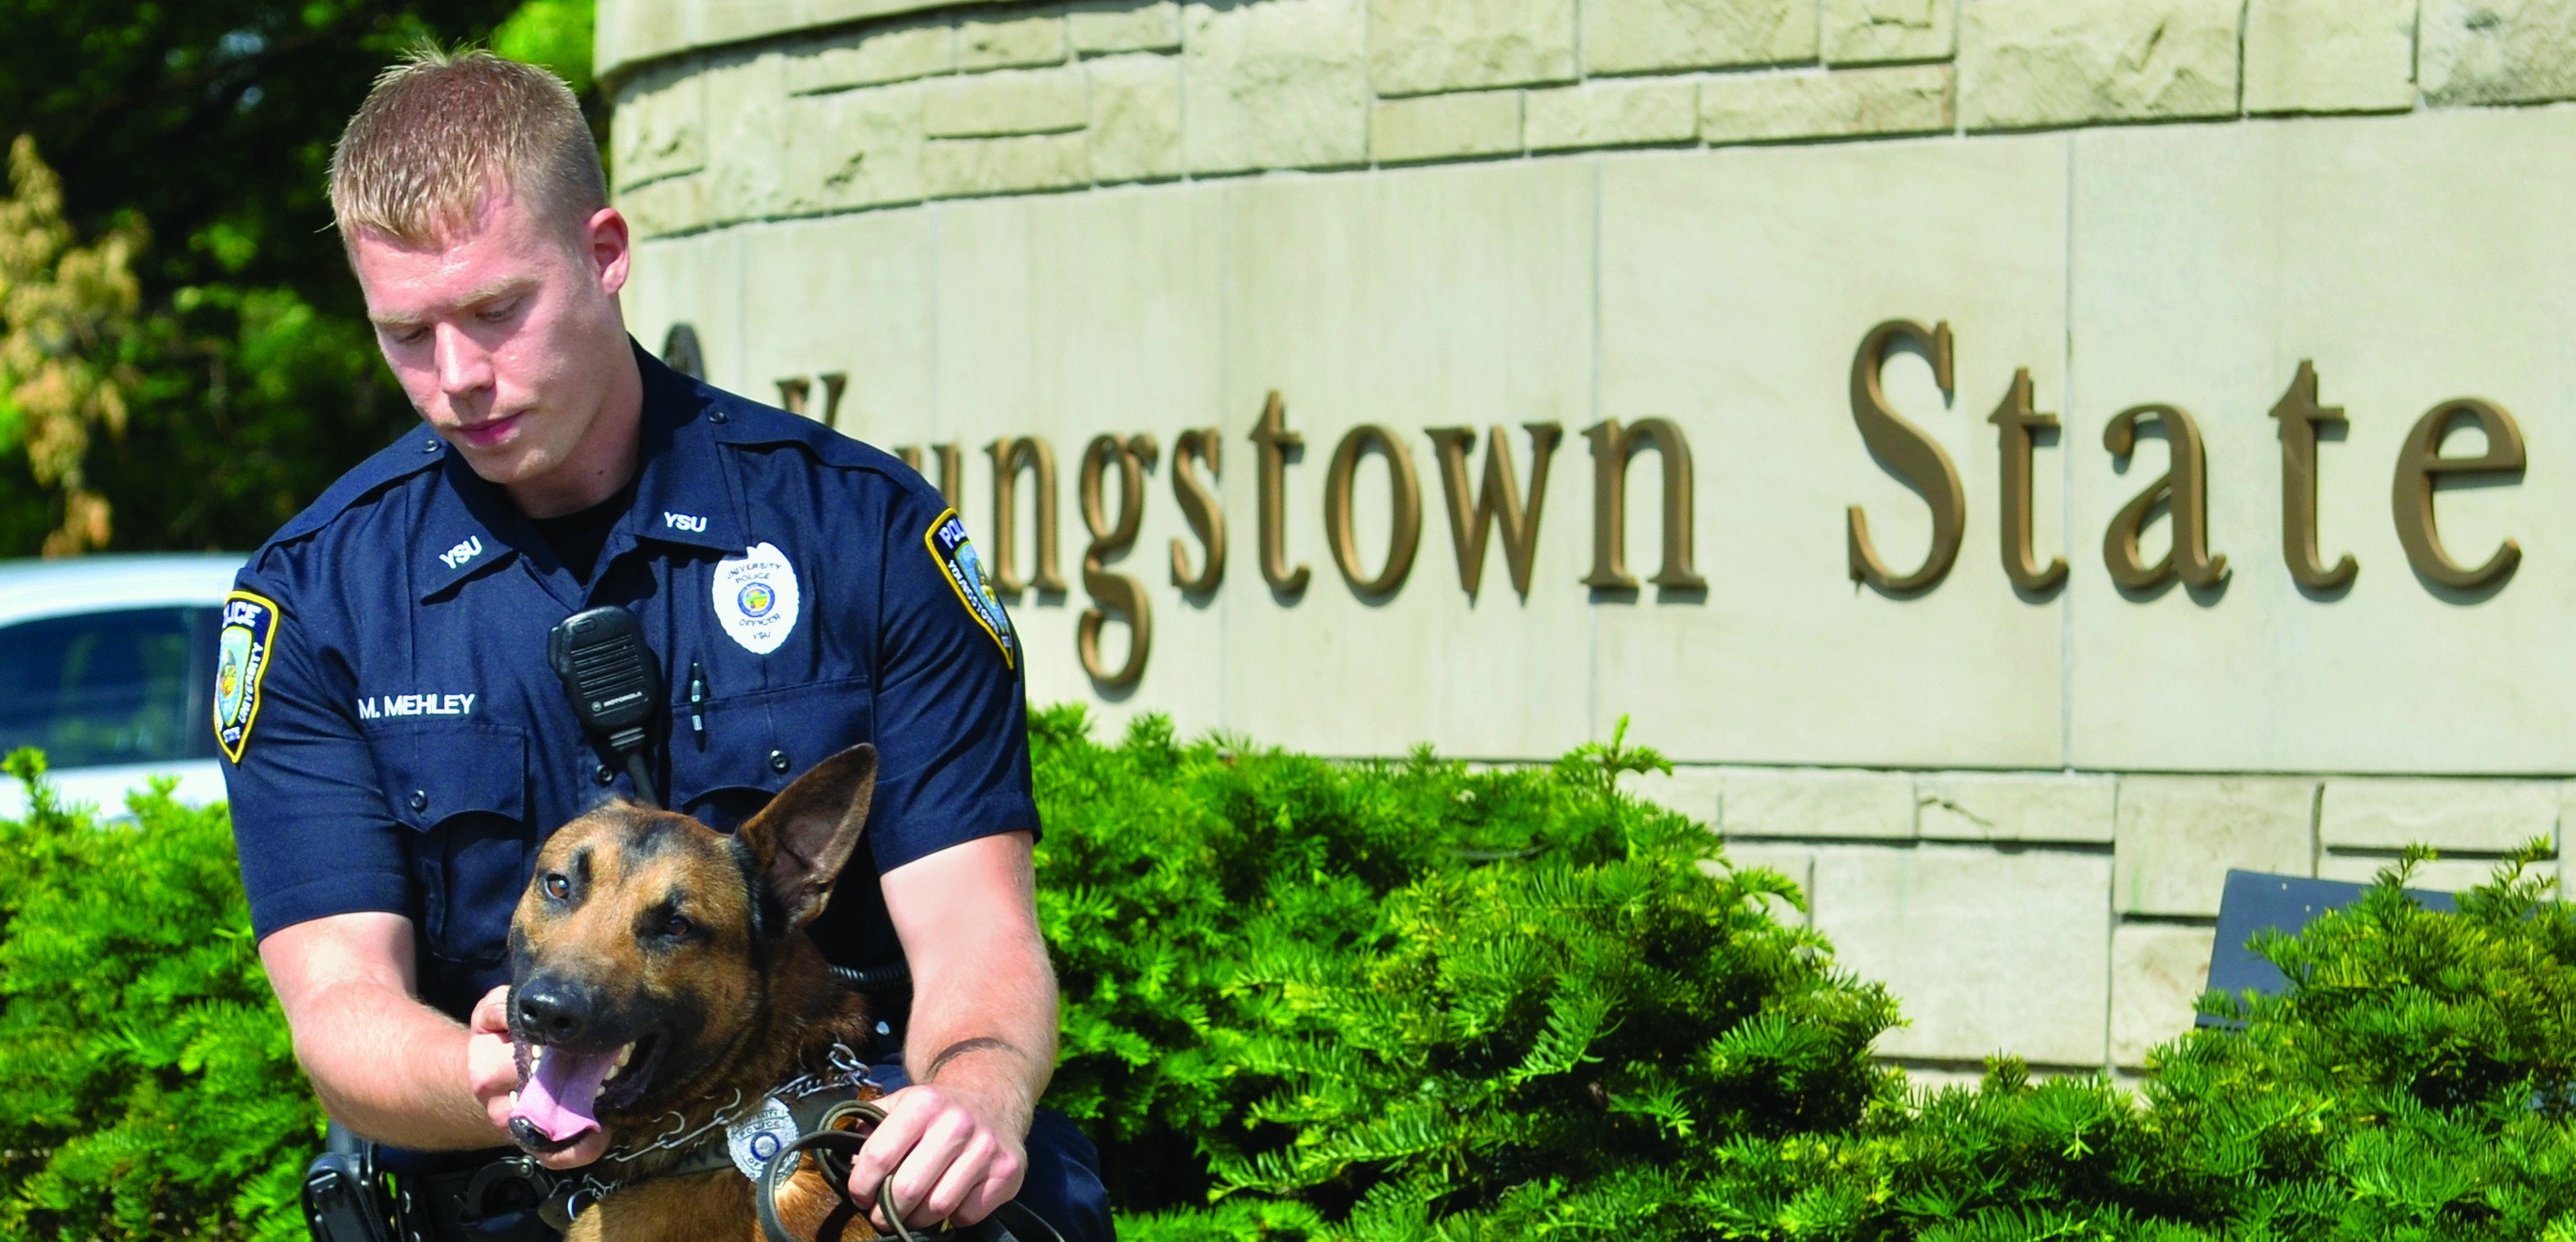 Pictured is Gino and Officer Mehley at the press conference in June 2014. Photo courtesy of YSUPD.